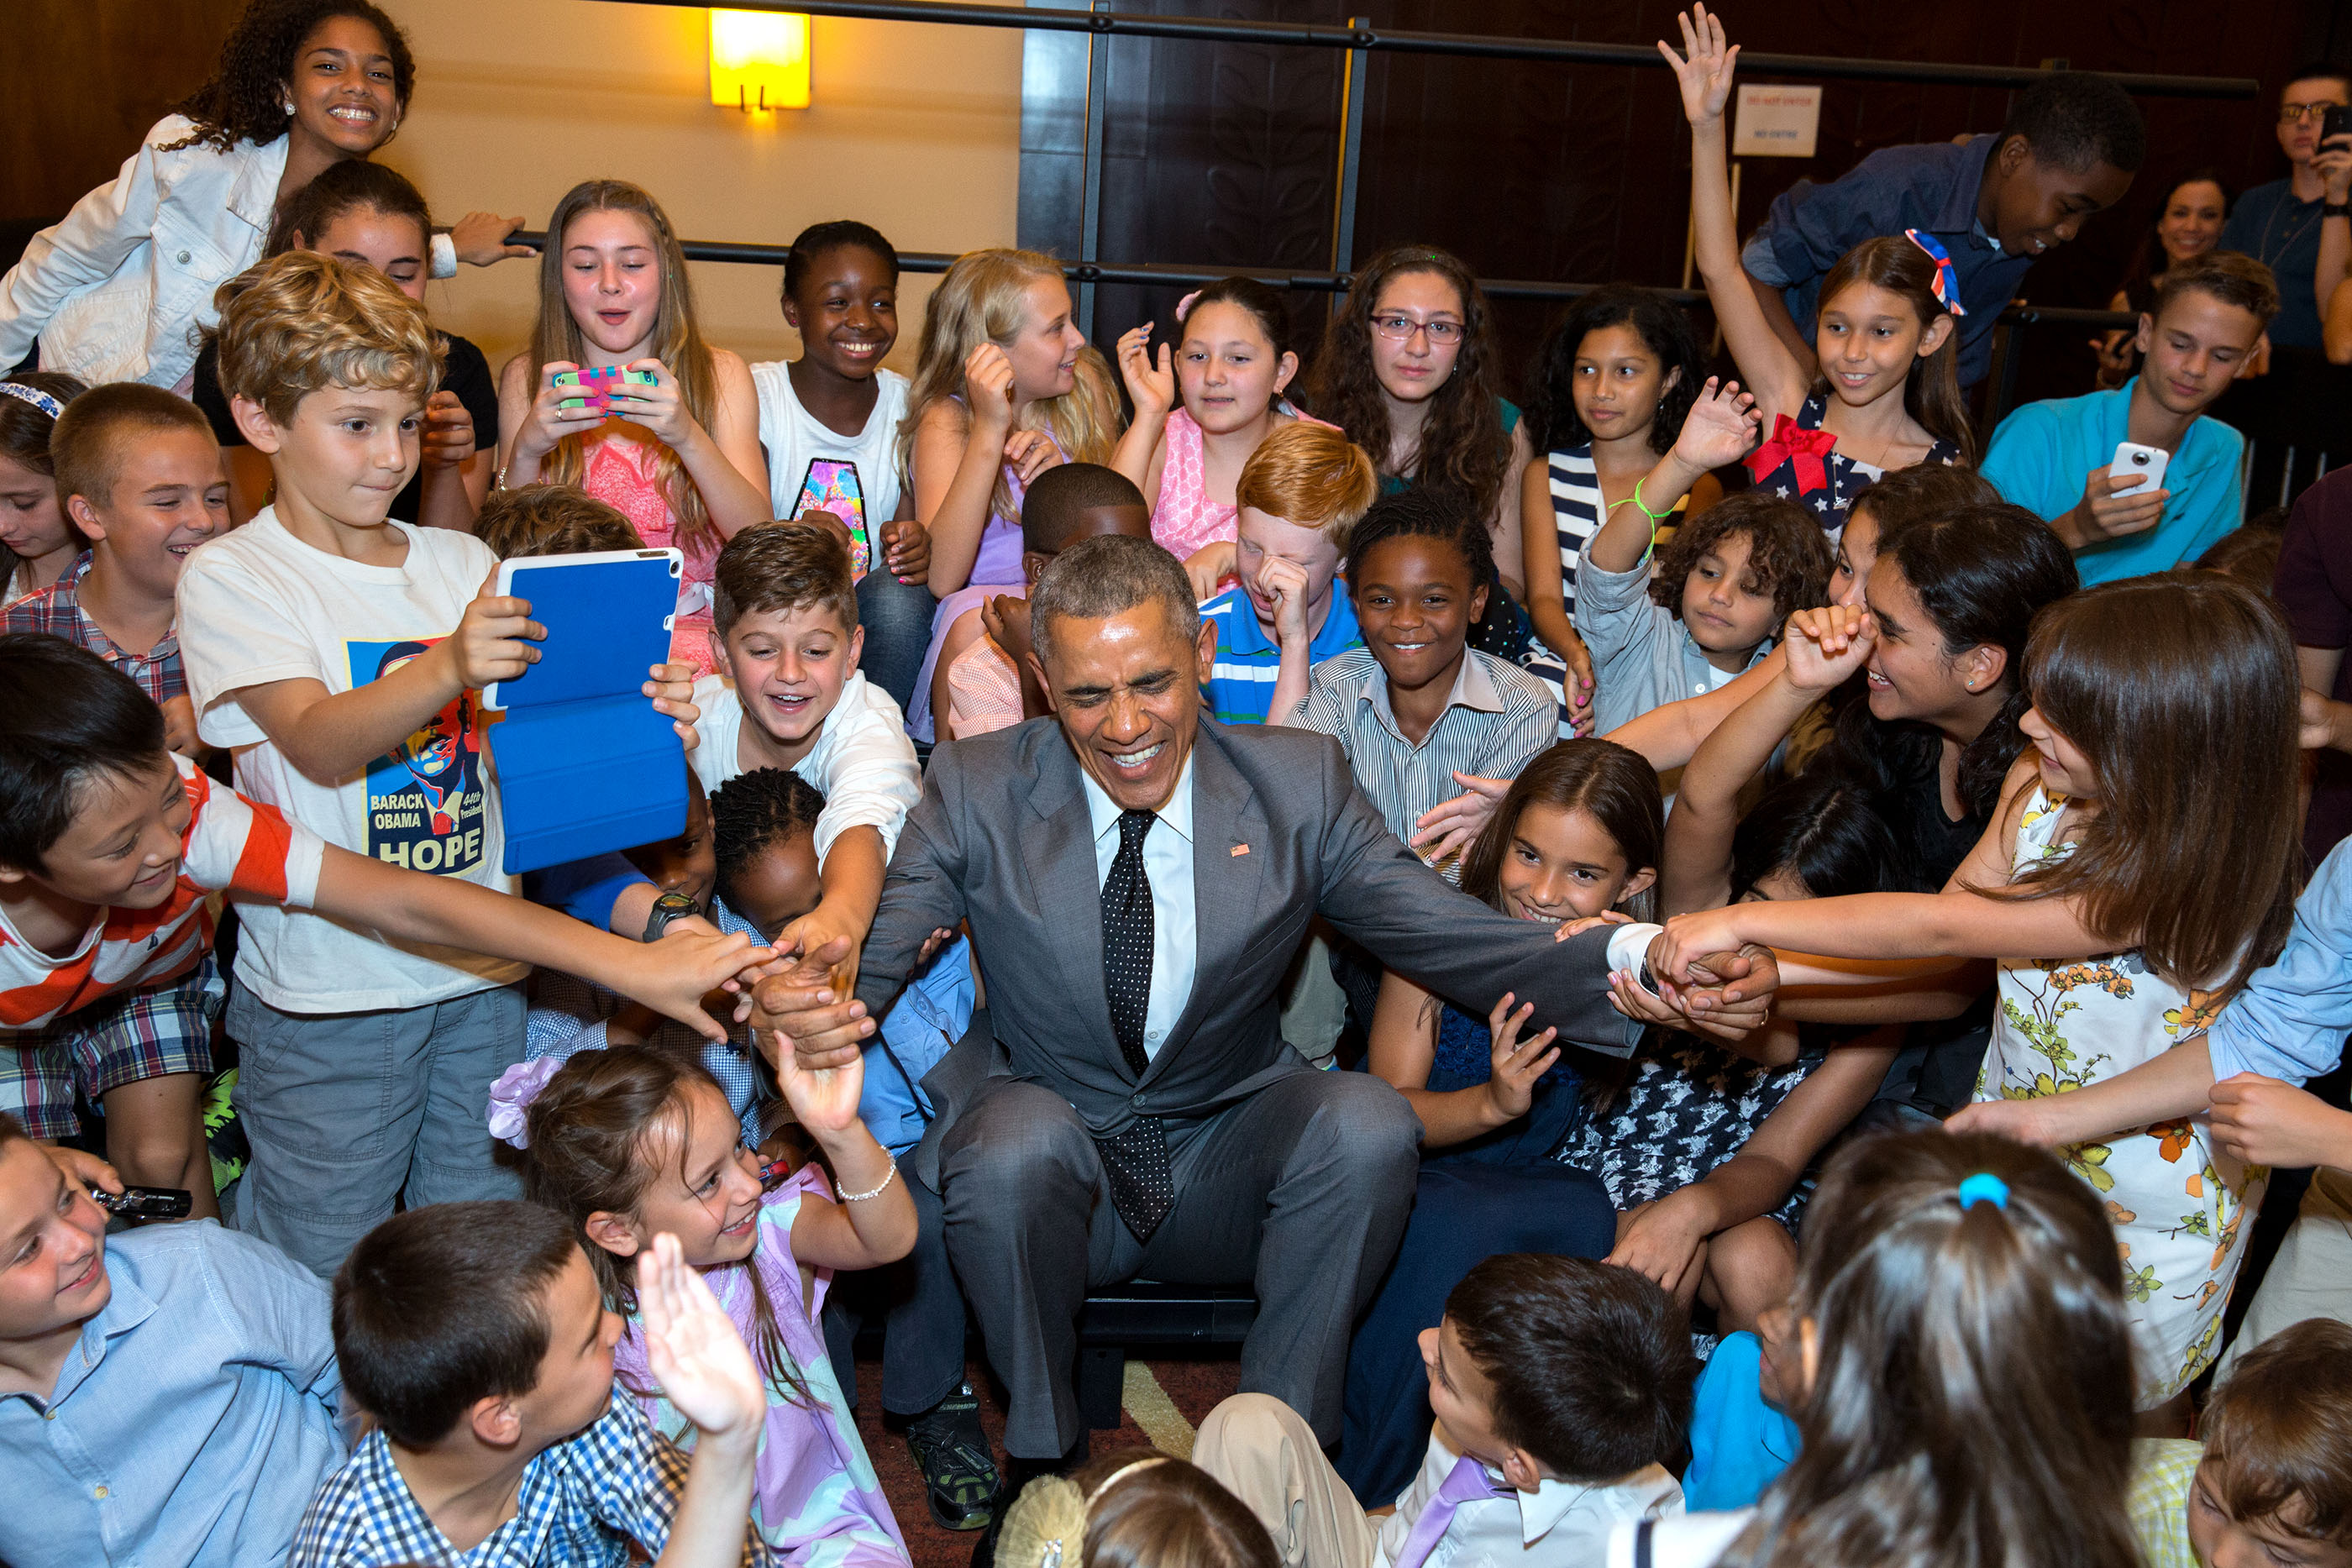 Children of U.S. Embassy personnel help President Obama to his feet after he posed for a group photo with them at the Westin Playa Bonita hotel in Panama City. (Official White House Photo by Pete Souza)